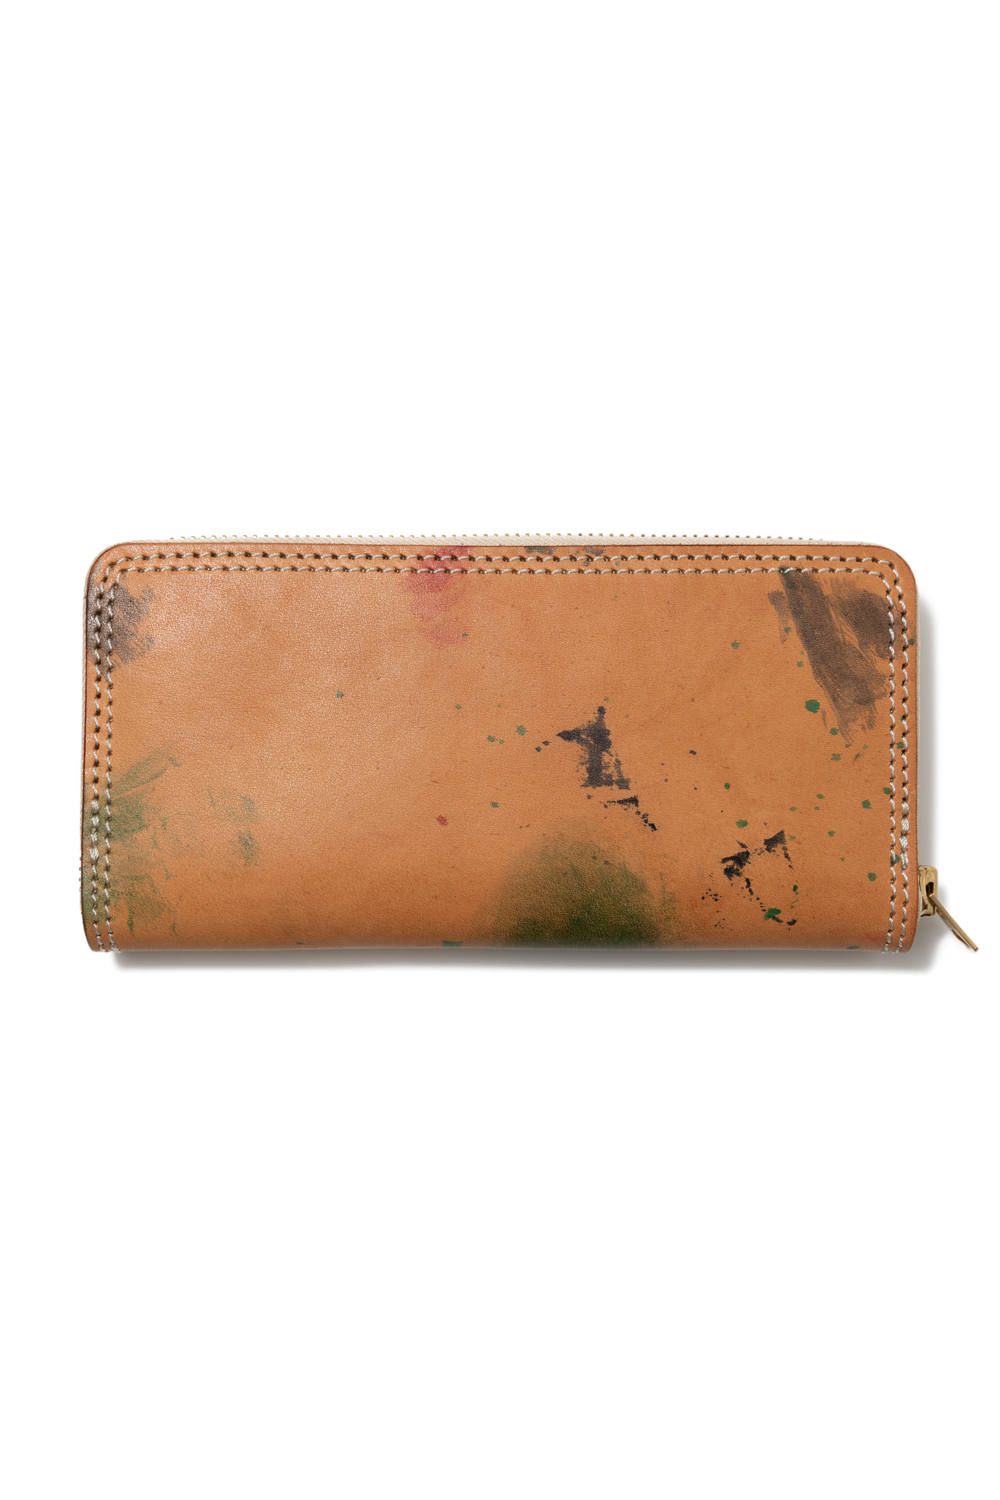 【19AW】ペイントレザーロングウォレット [ナチュラル] / PAINT LEATHER LONG WALLET [NATURAL]